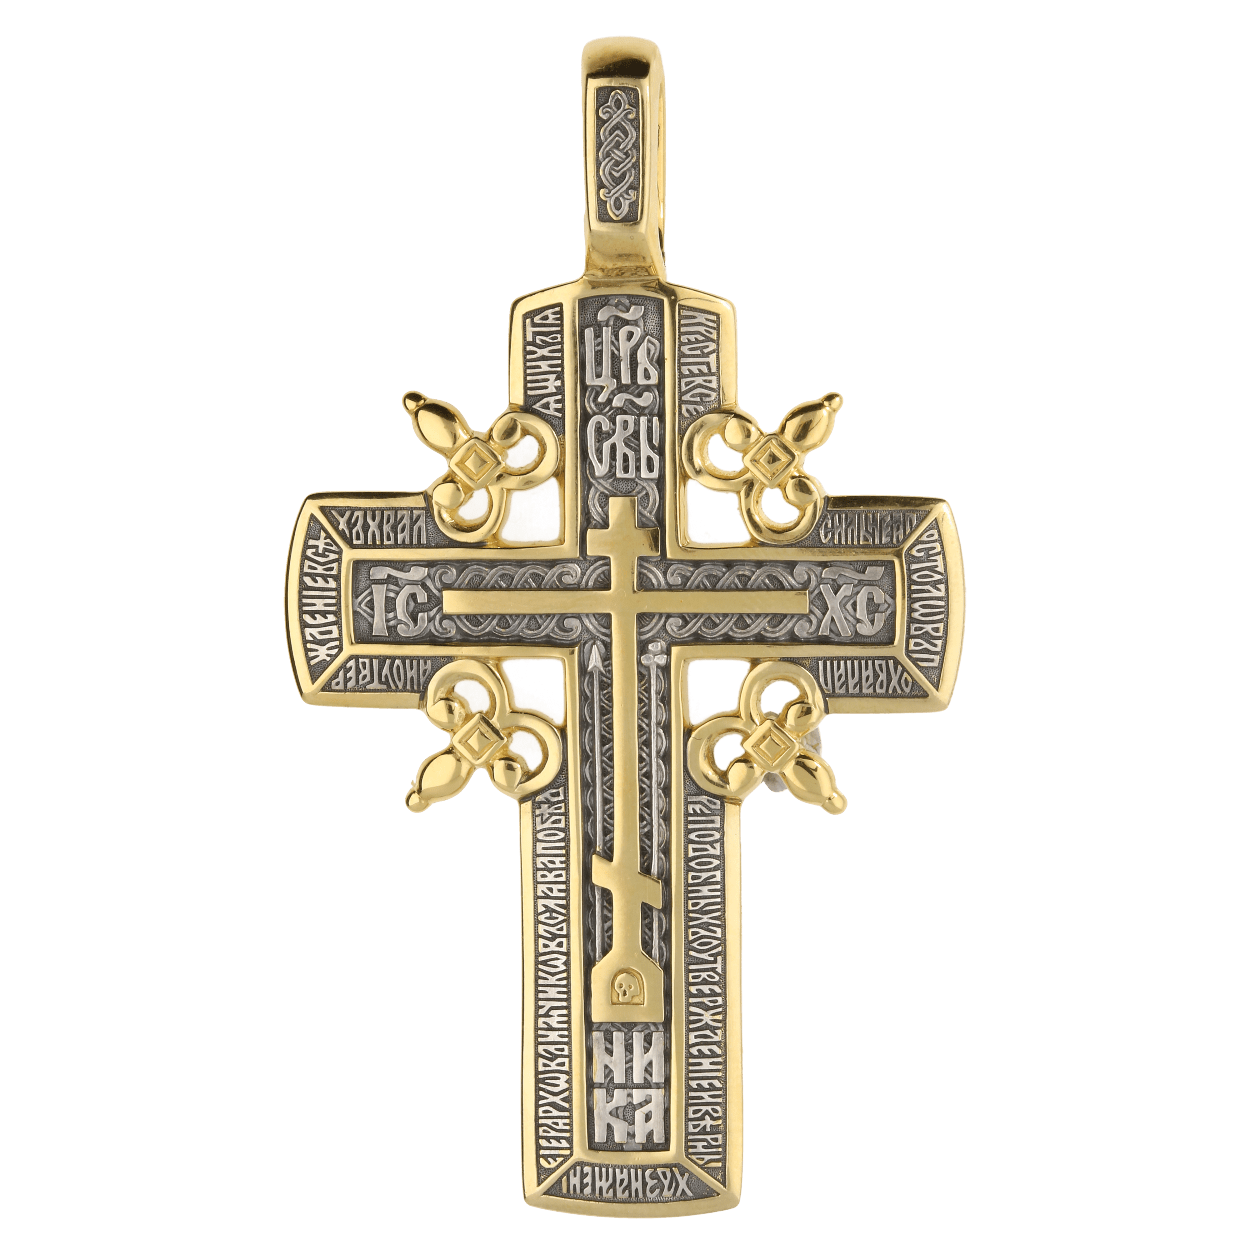 Russian-Orthodox-silver-cross-pendant-WITH-THE-CROSS-OF-CALVARY-AND-SONGS-FROM-THE-CANON-Master-Jeweler-Fedorov